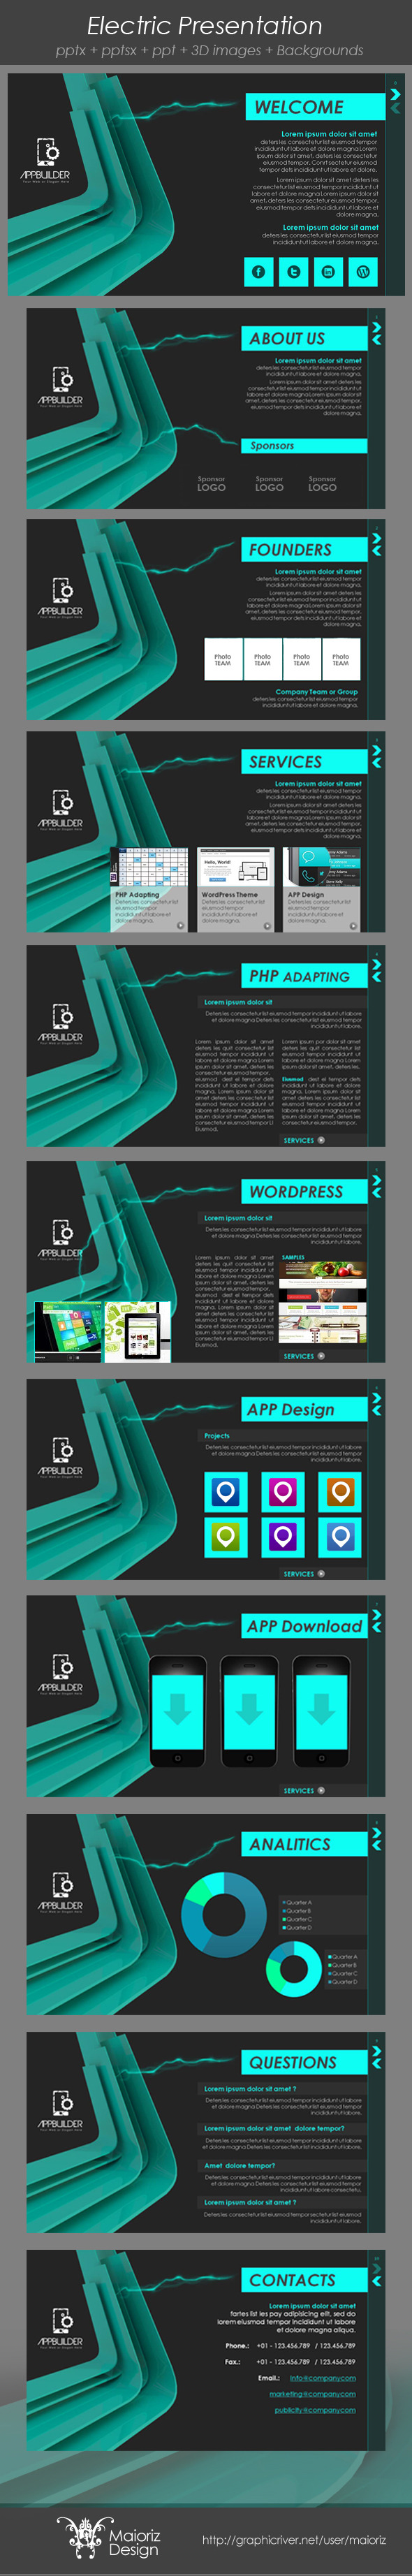 Electric Presentation  - Abstract PowerPoint Templates